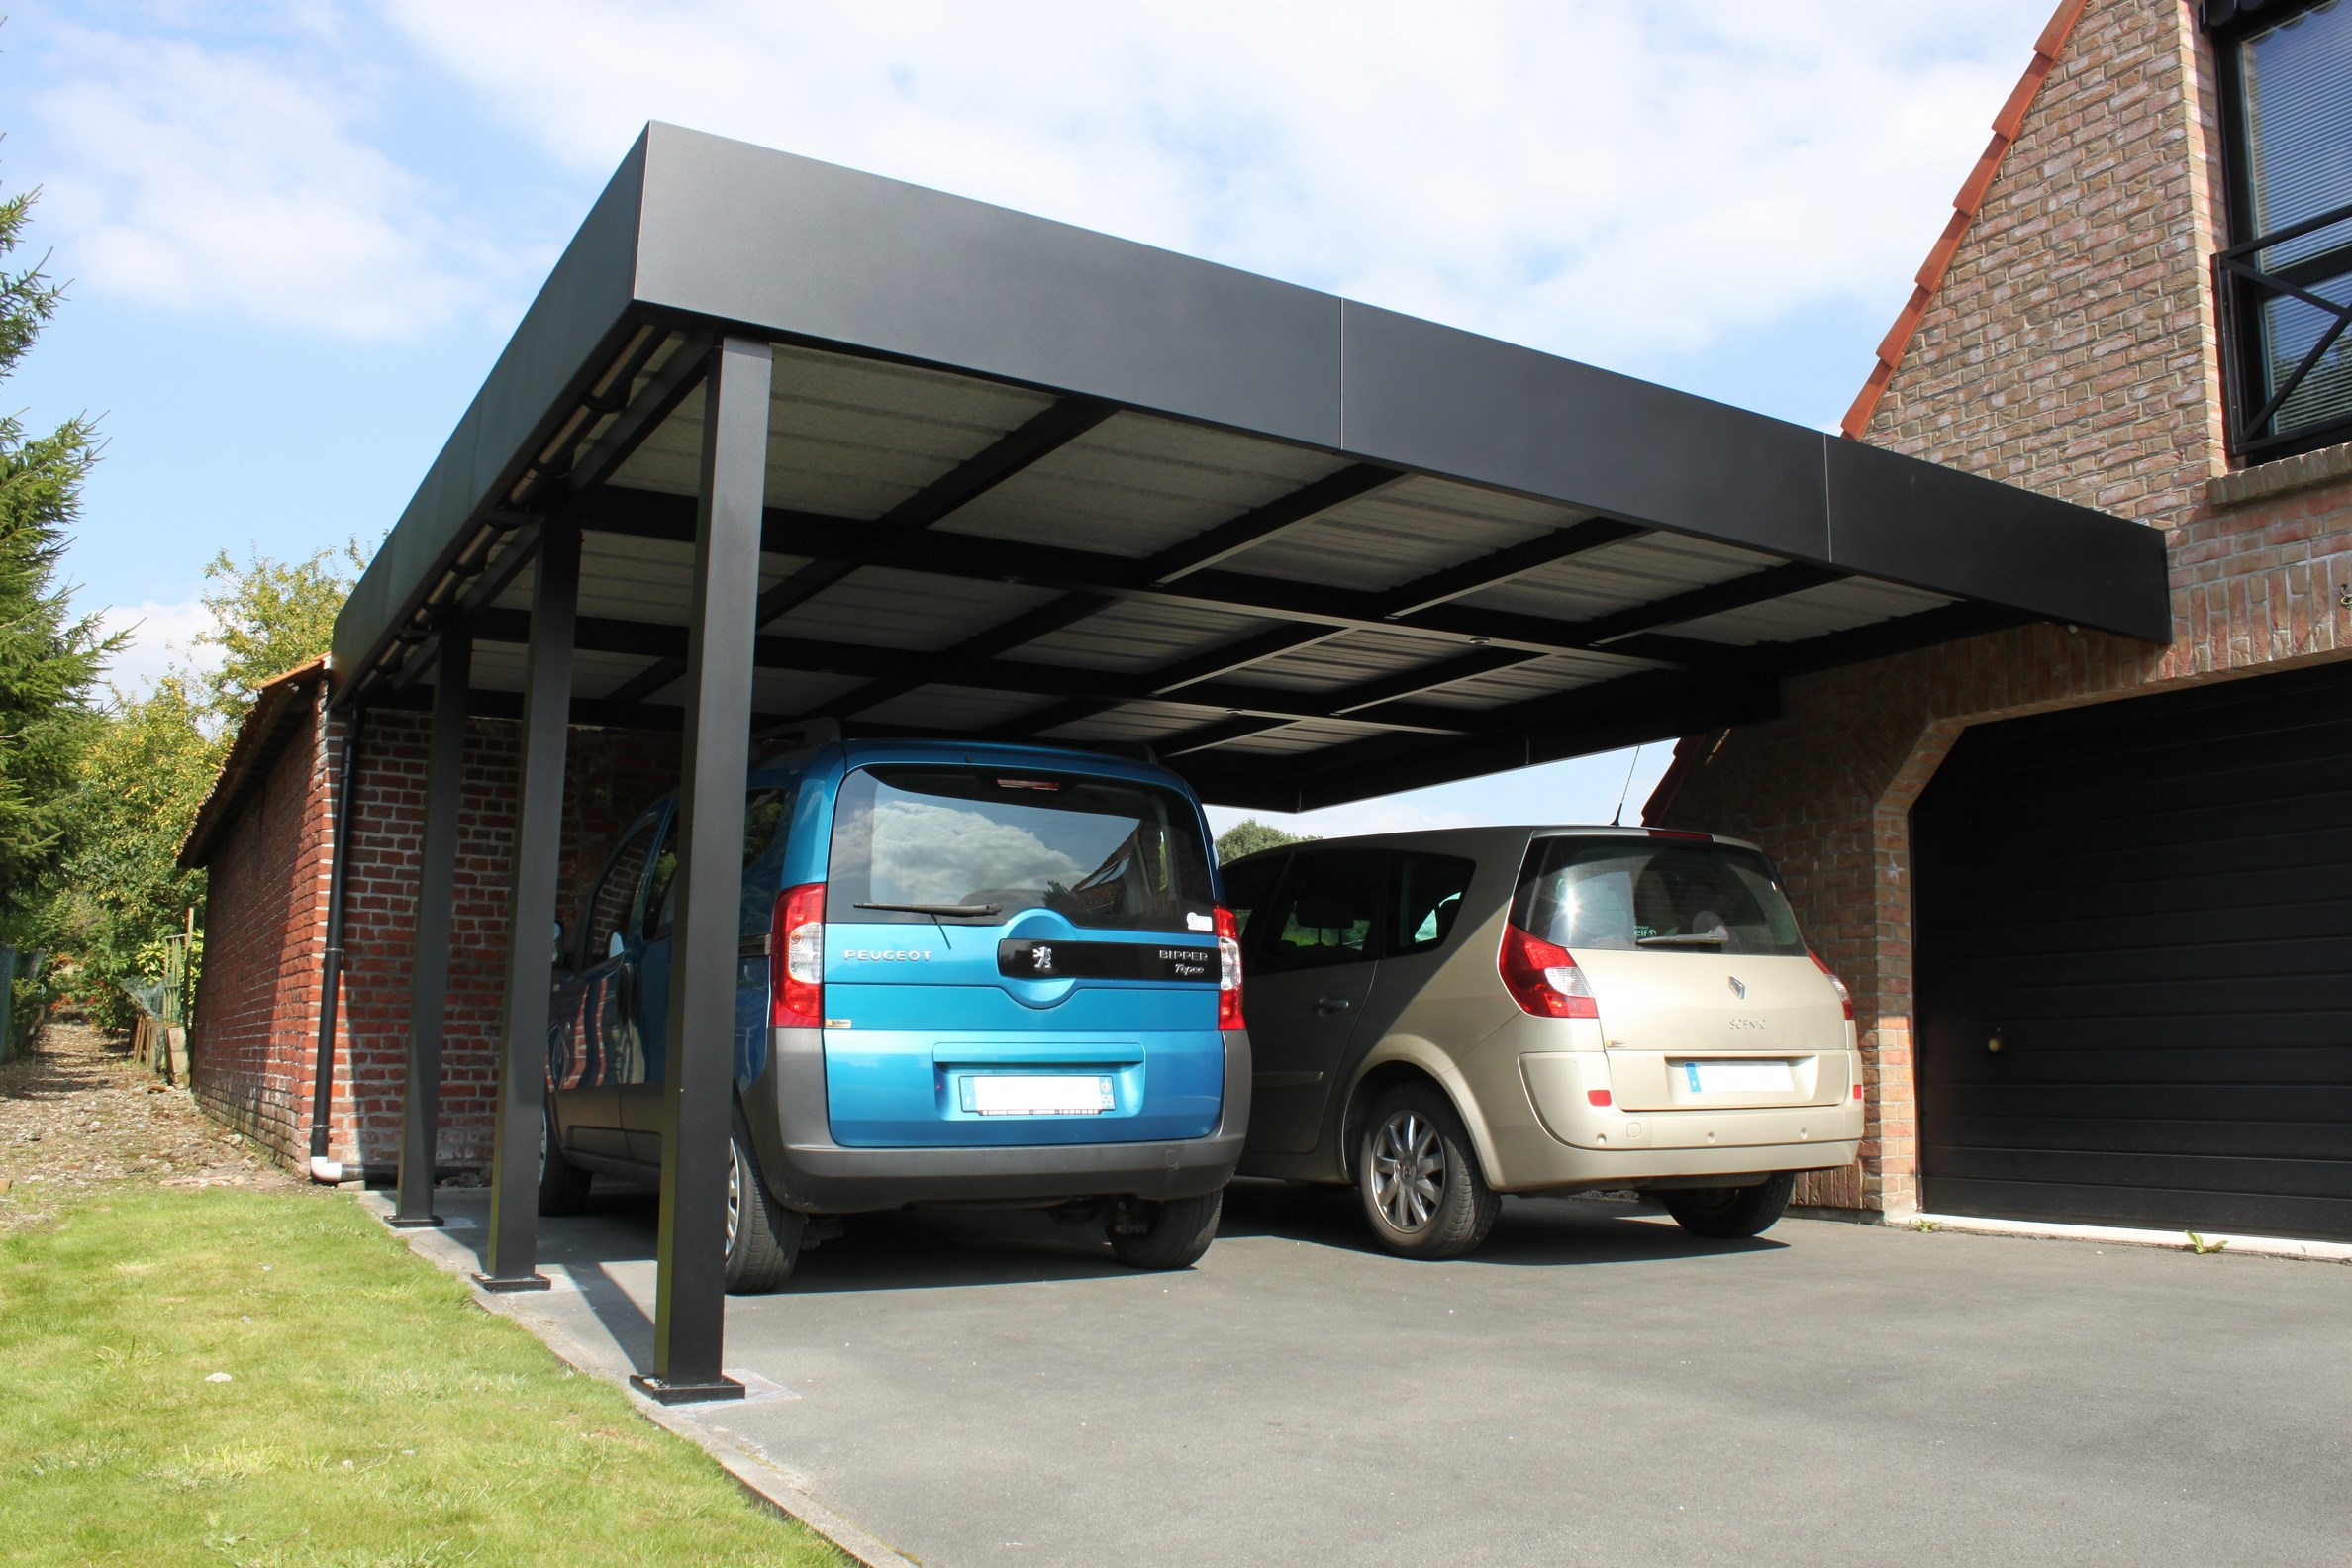 Aluminium archives carport - Garage carport voiture ...